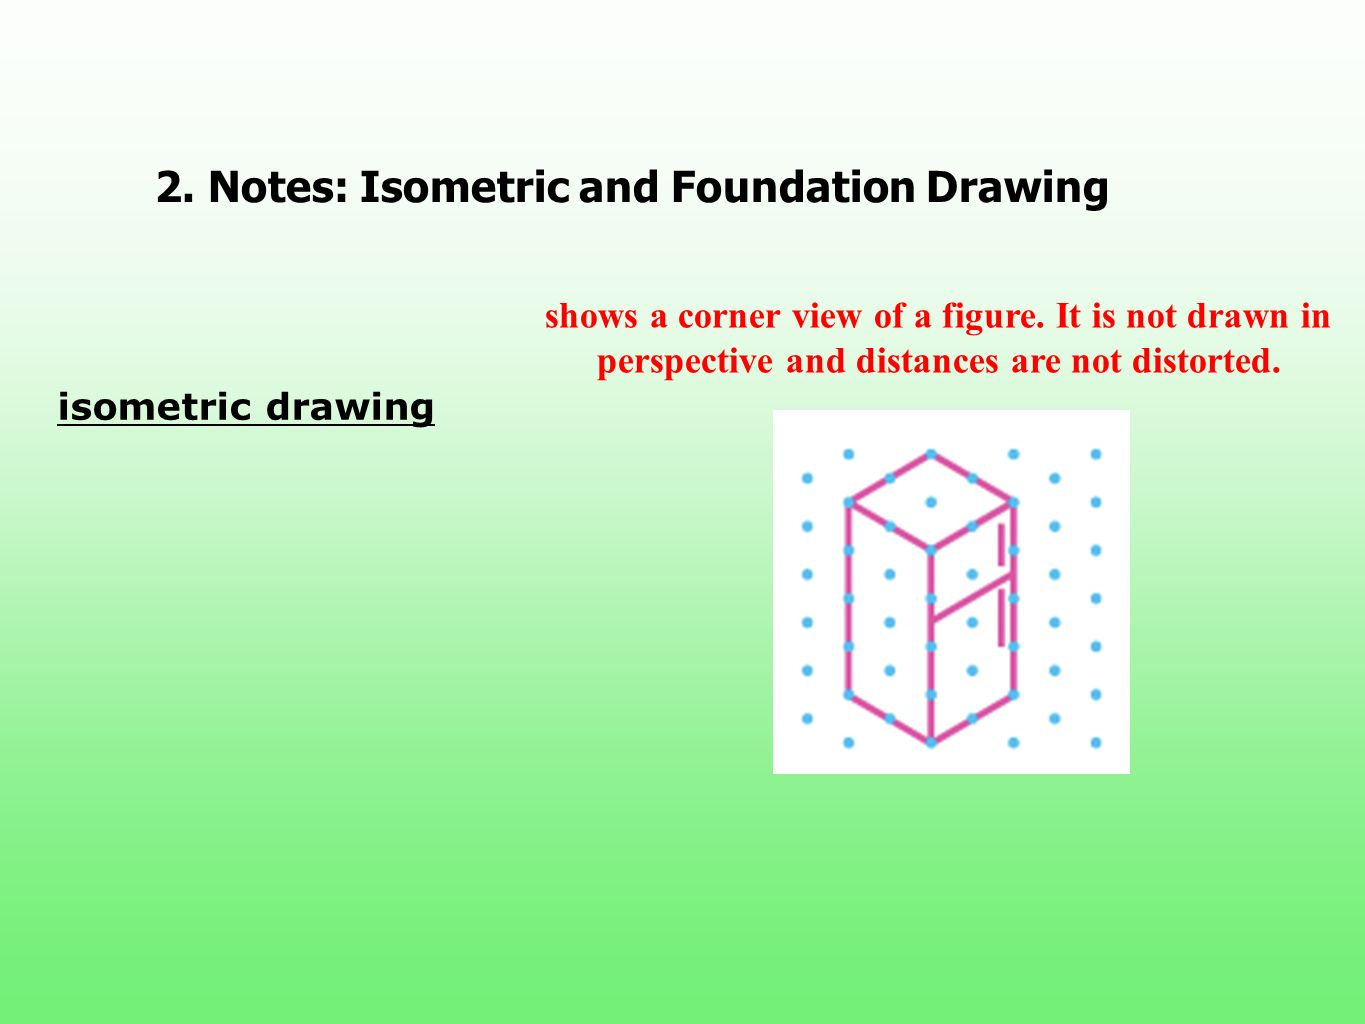 isometric drawing shows a corner view of a figure. It is not drawn in perspective and distances are not distorted. 2.Notes: Isometric and Foundation D